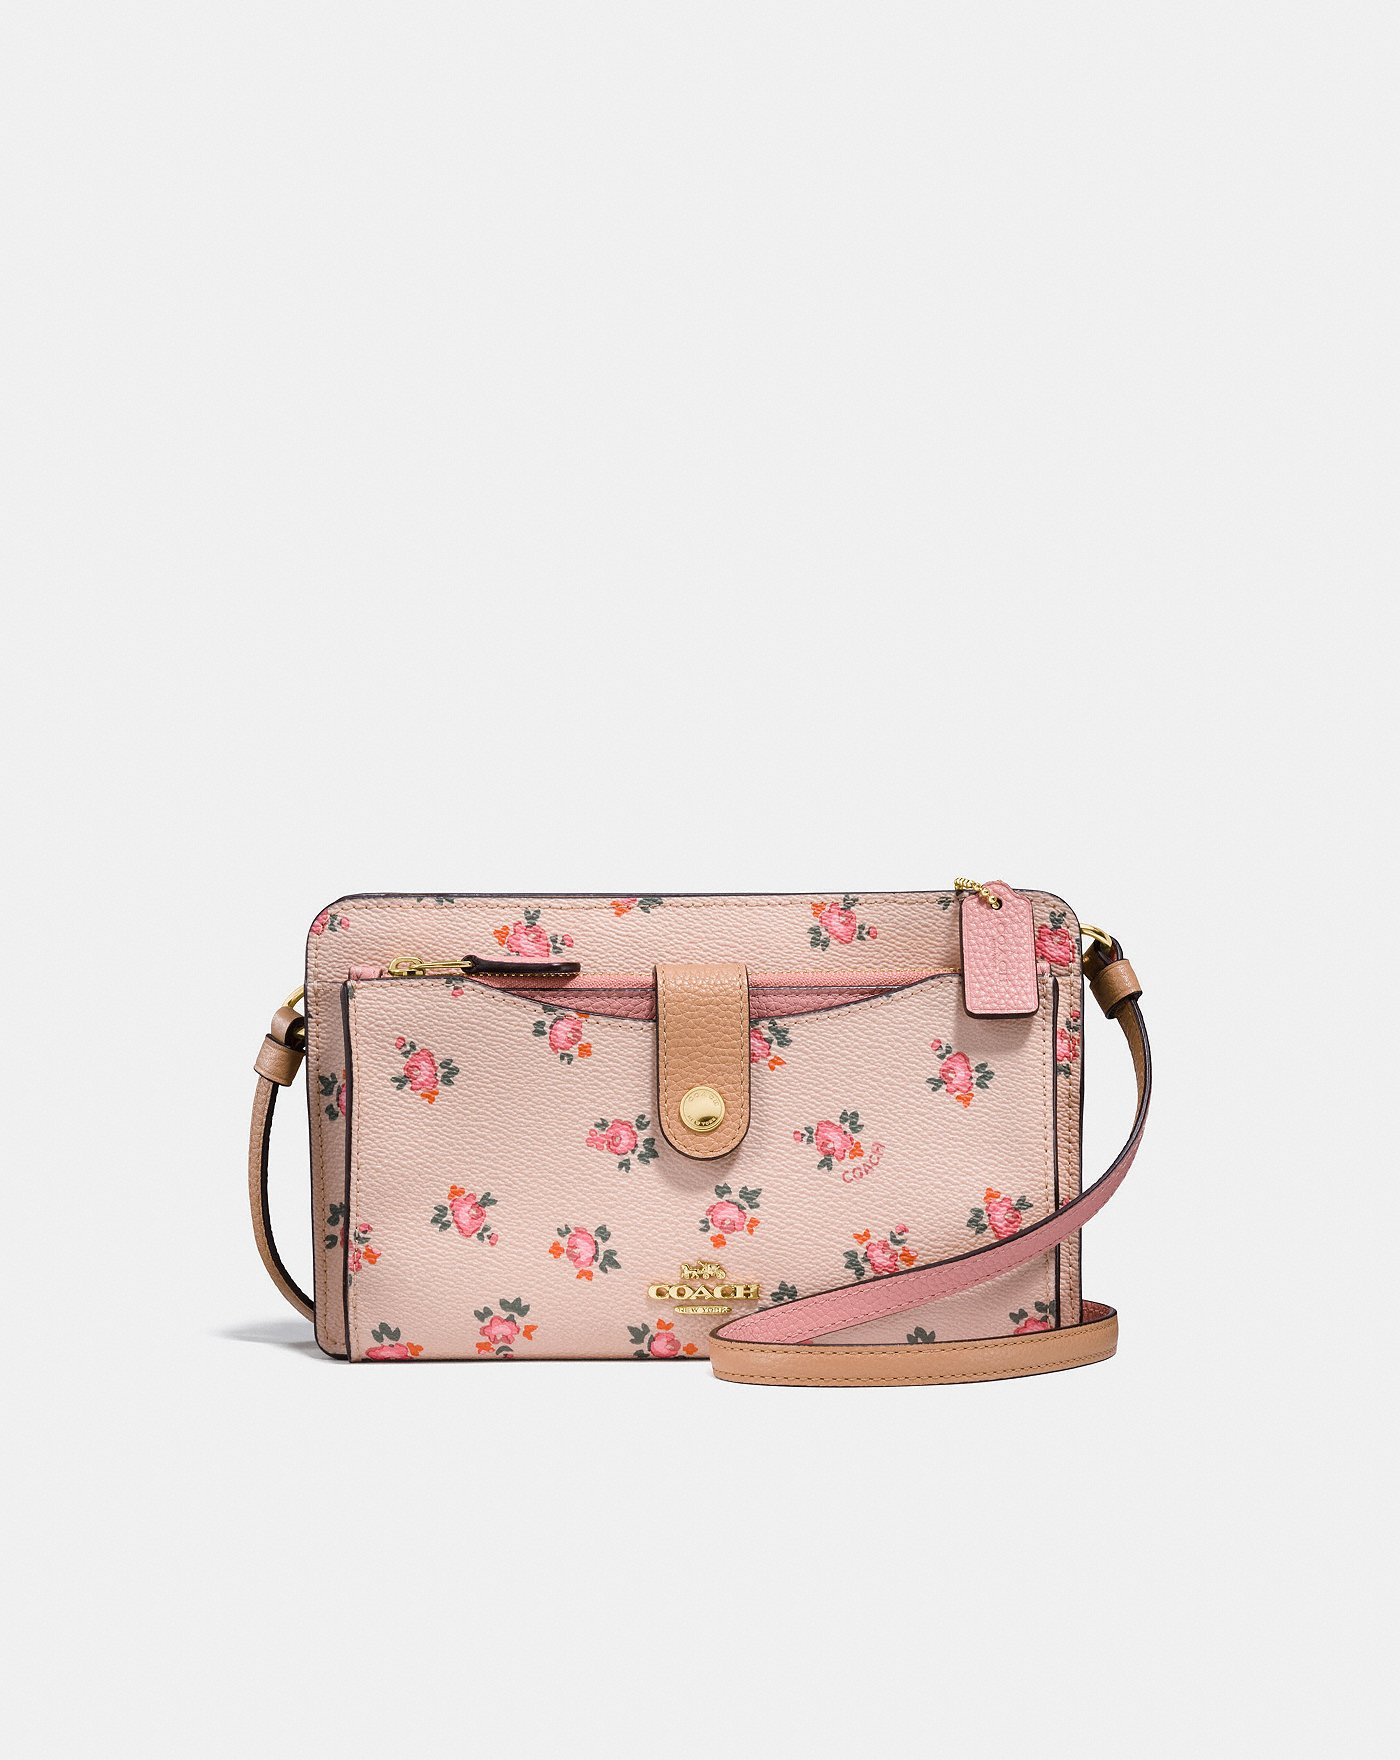 2a8ad9e042d8 Pop-Up Messenger With Floral Bloom Print